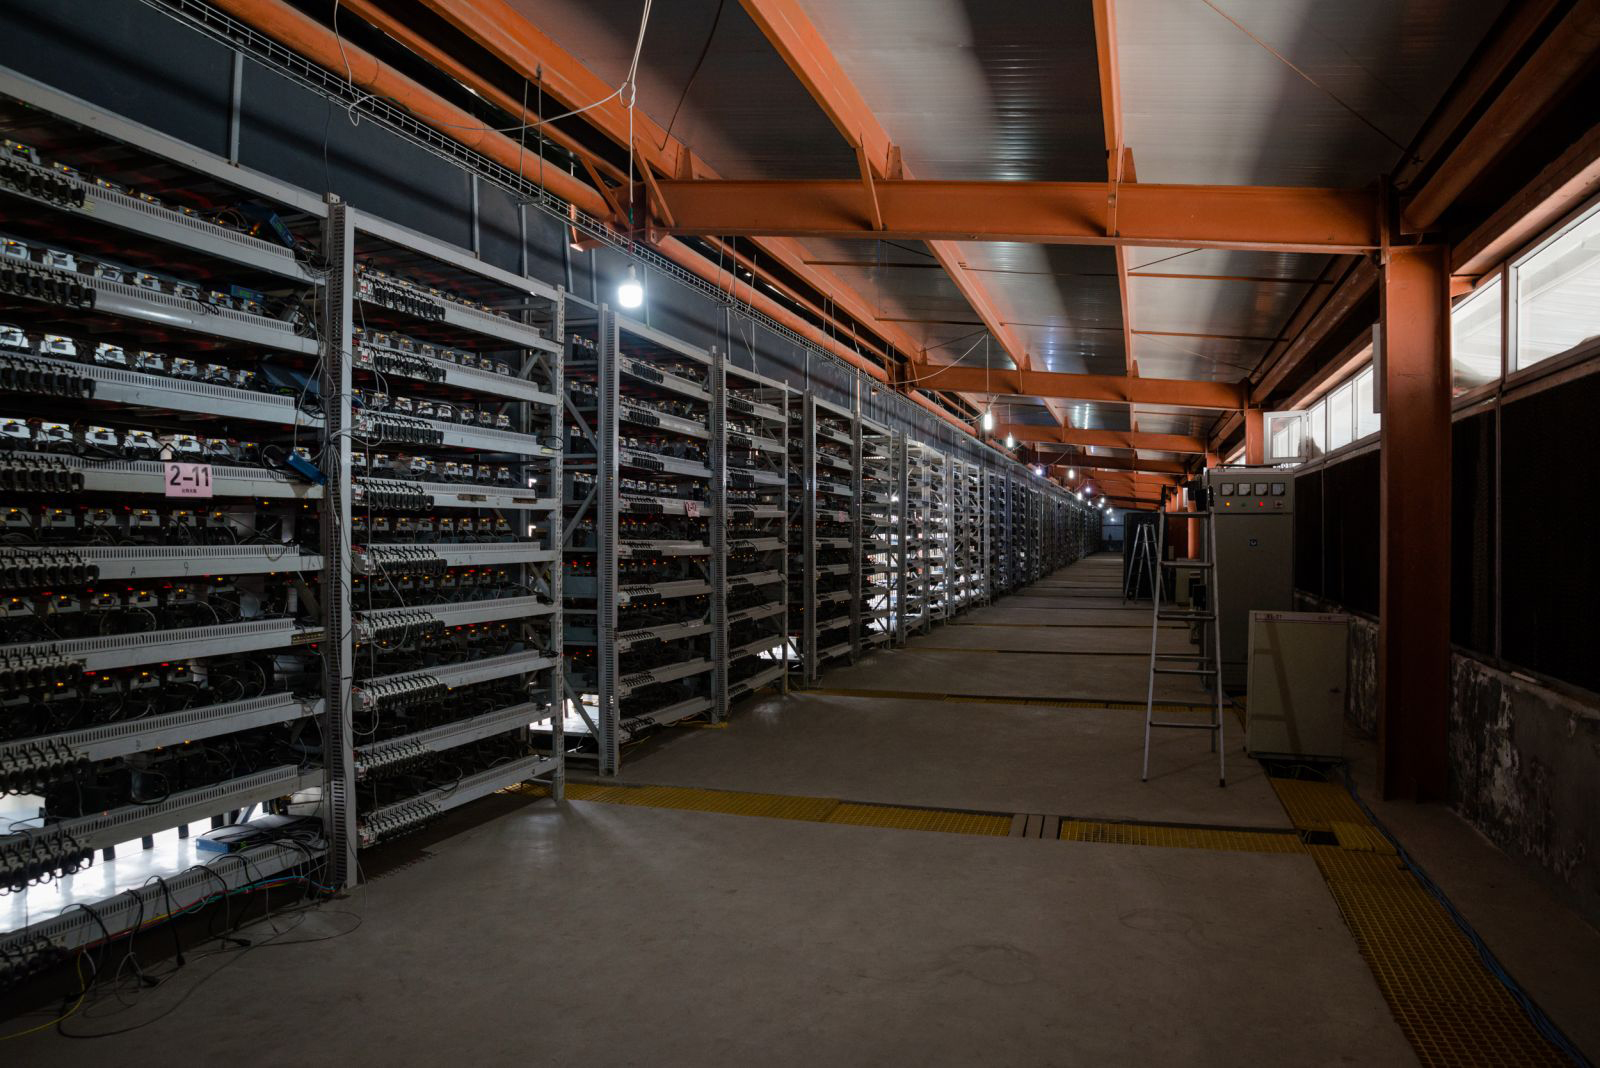 Image Source: https://qz.com/1055126/photos-china-has-one-of-worlds-largest-bitcoin-mines/